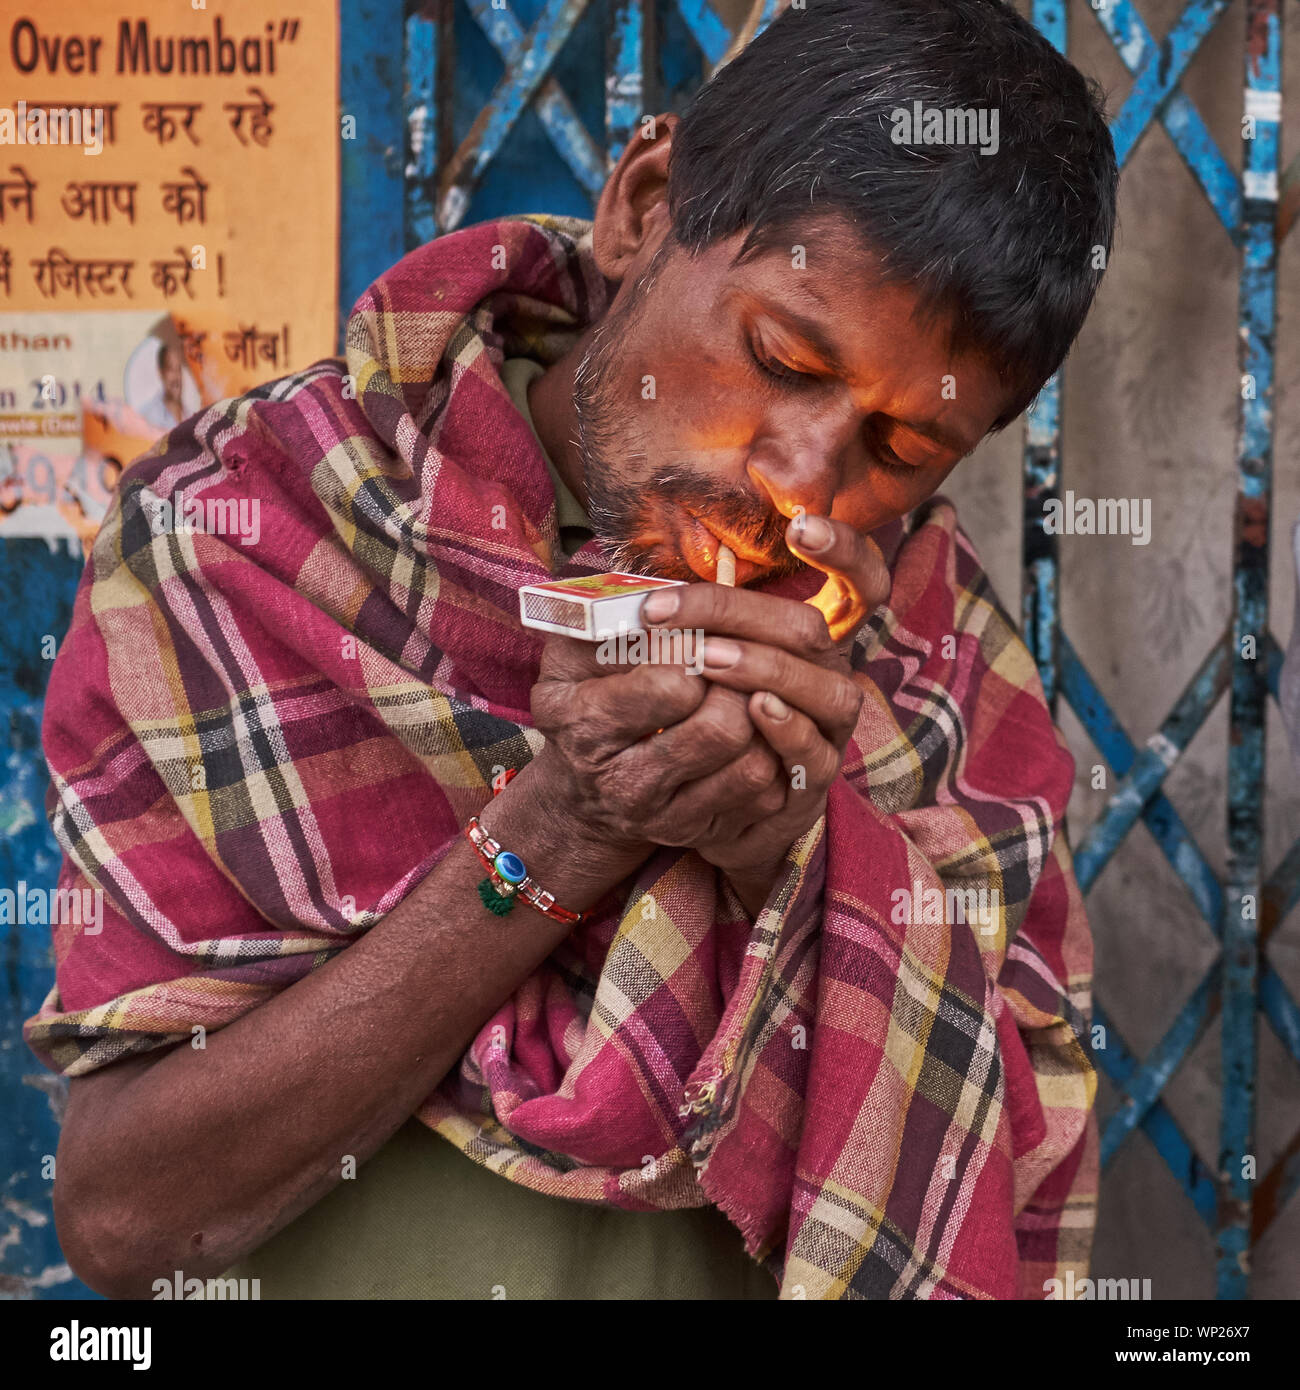 Smoking Cigarette India High Resolution Stock Photography And Images Alamy